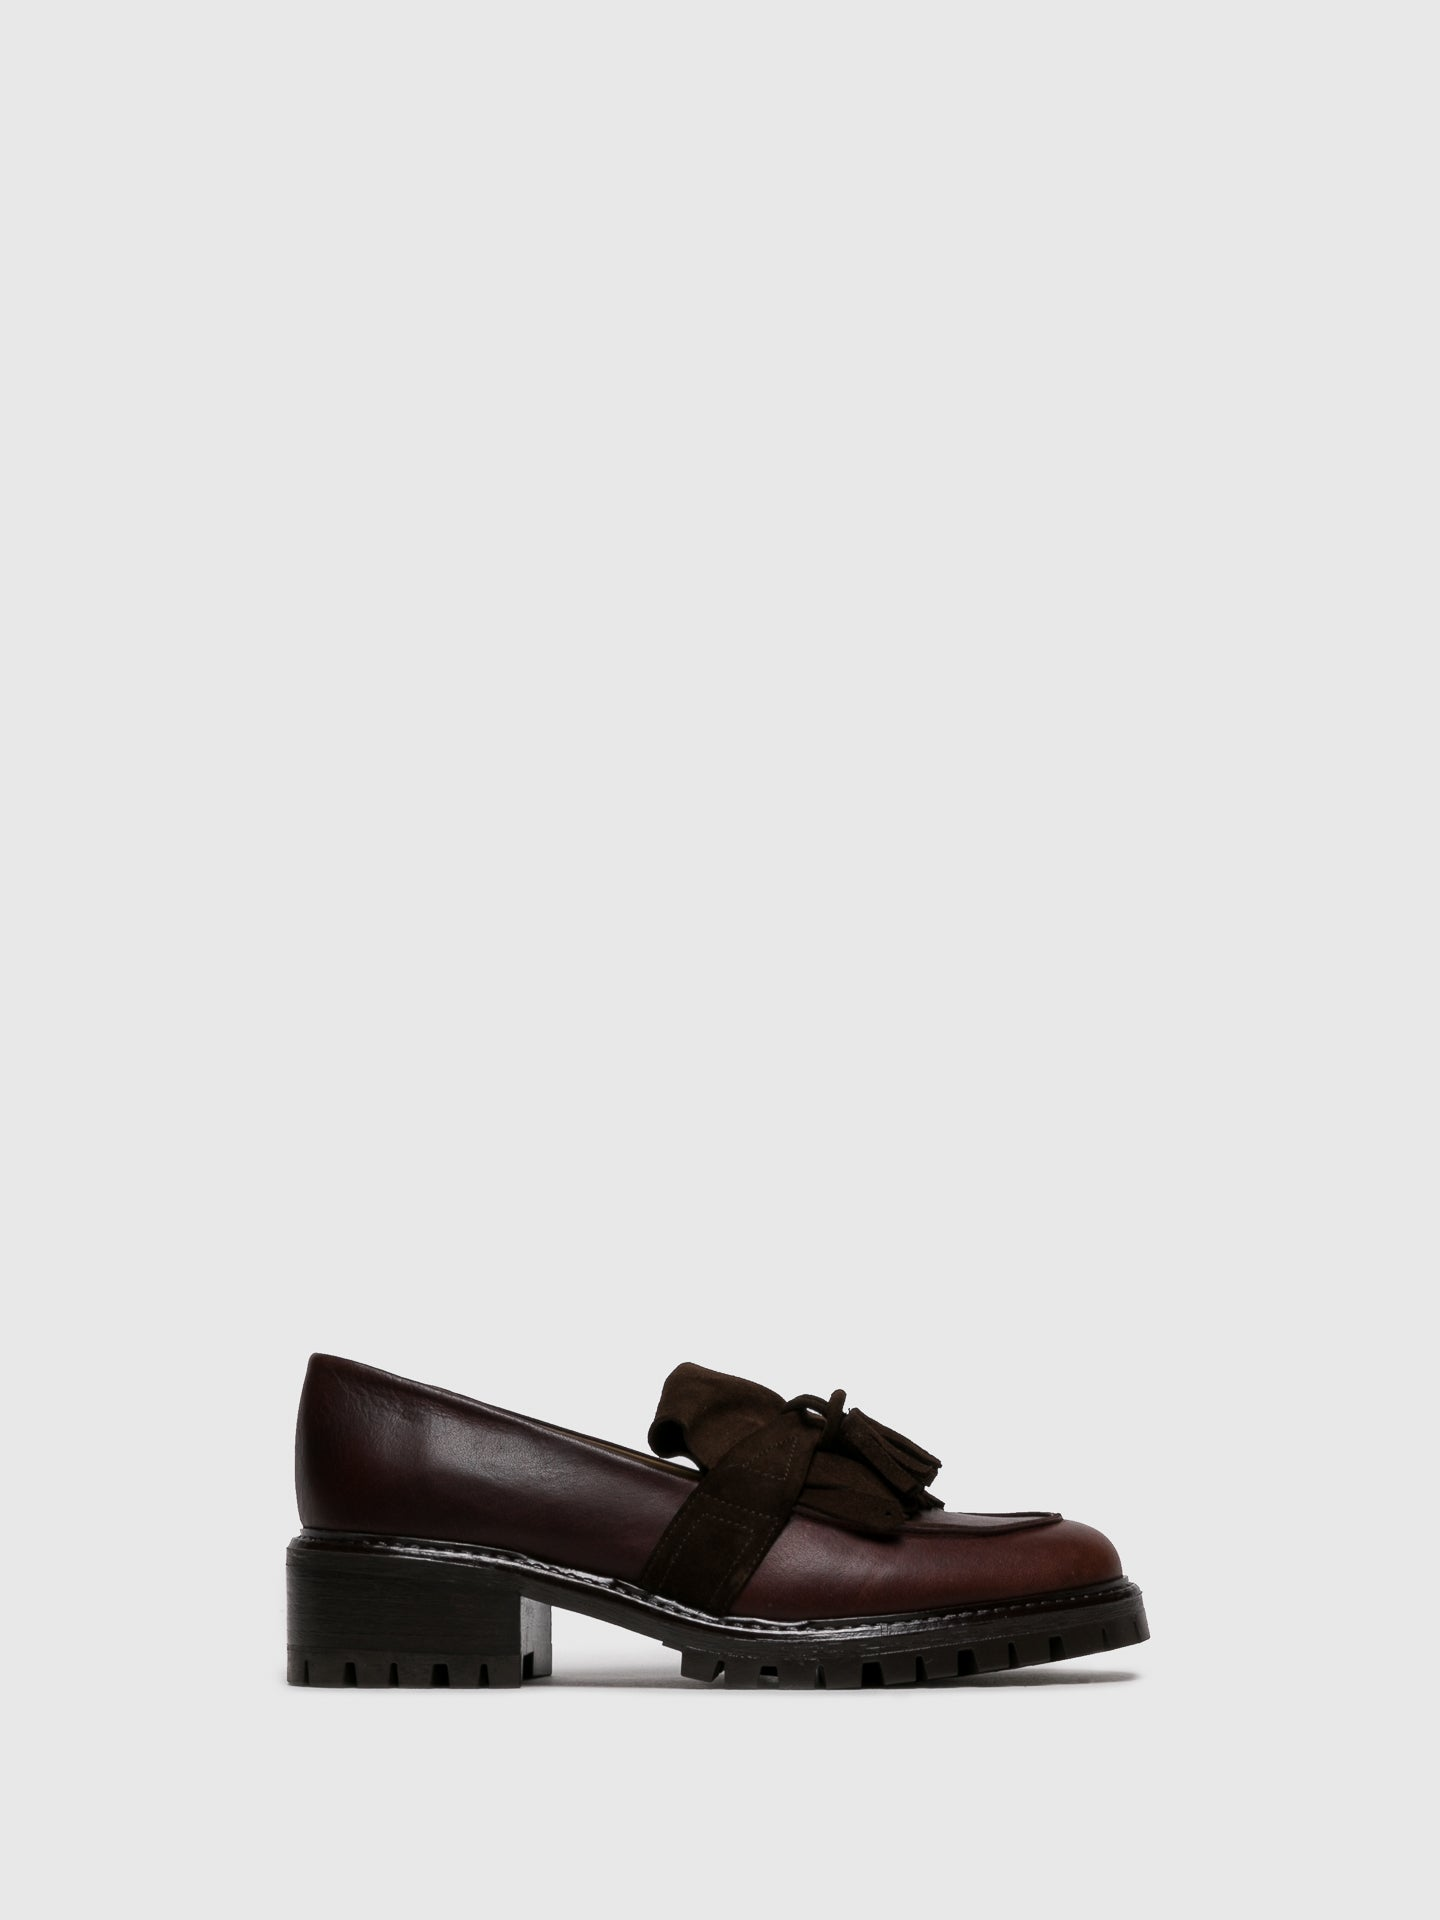 JJ Heitor Brown Leather Loafers Shoes